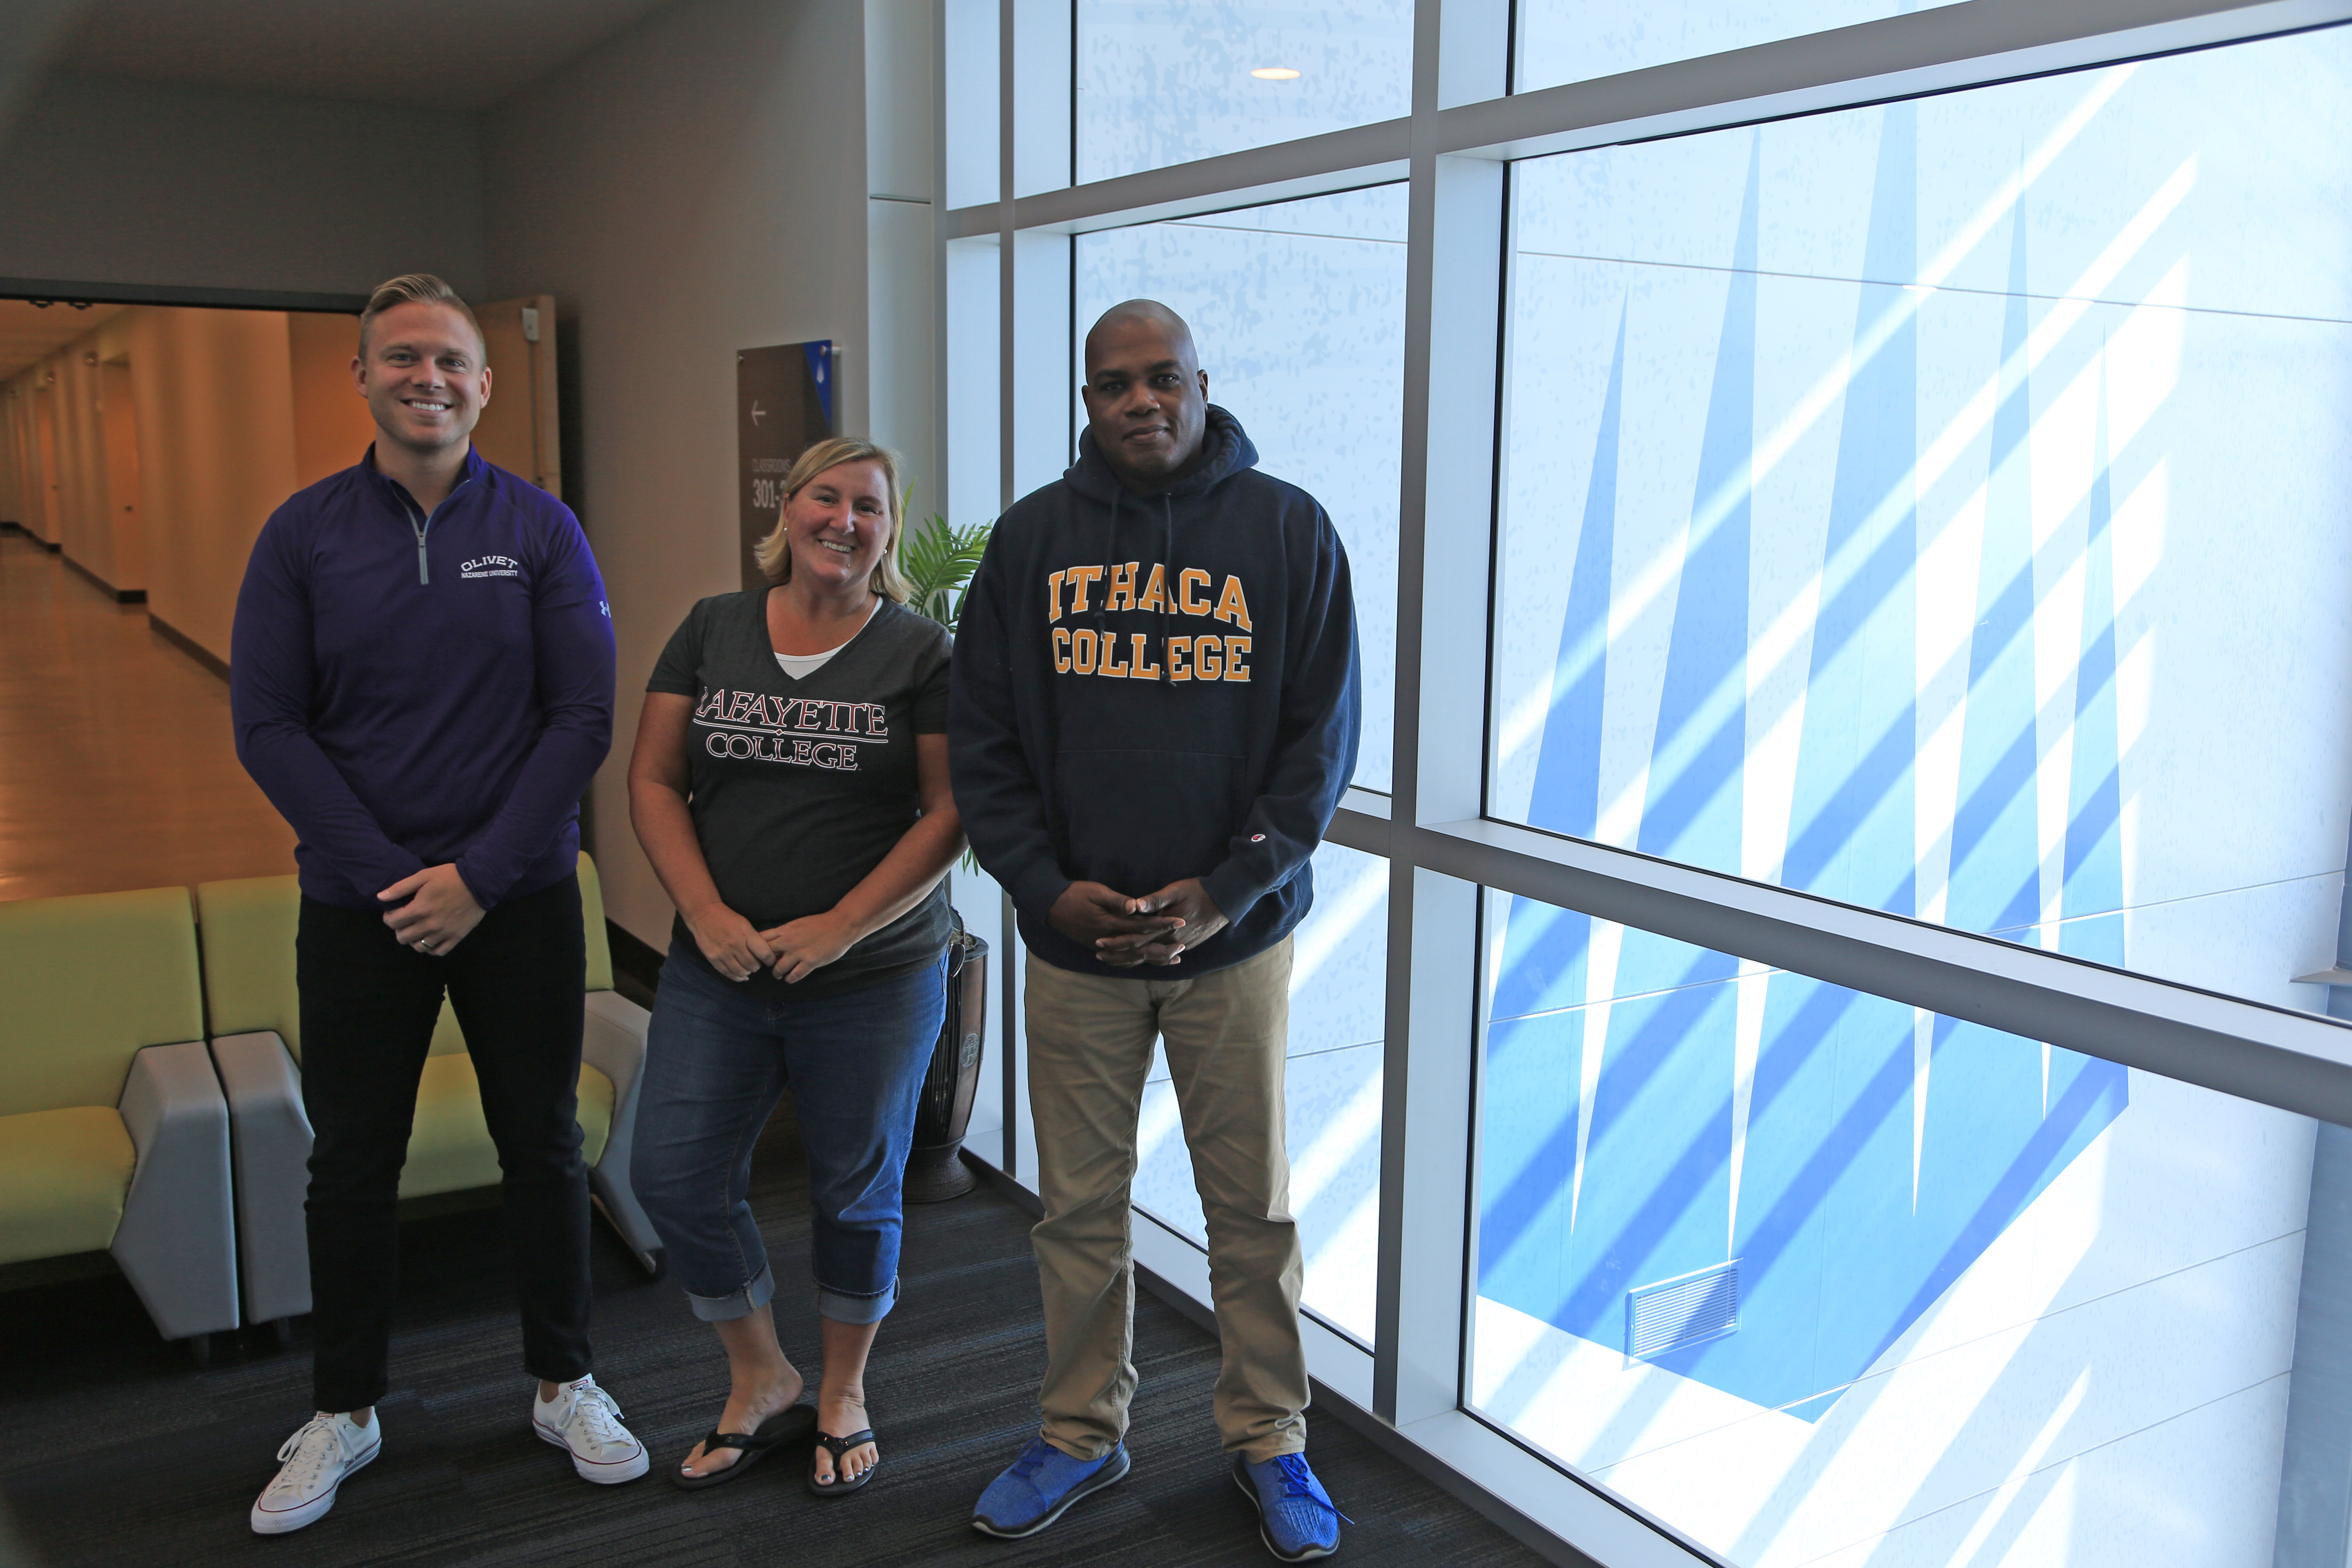 Heather Von Seggern, Wayne Walton & Jeff Deruiter are all College Advisors at IMG Academy